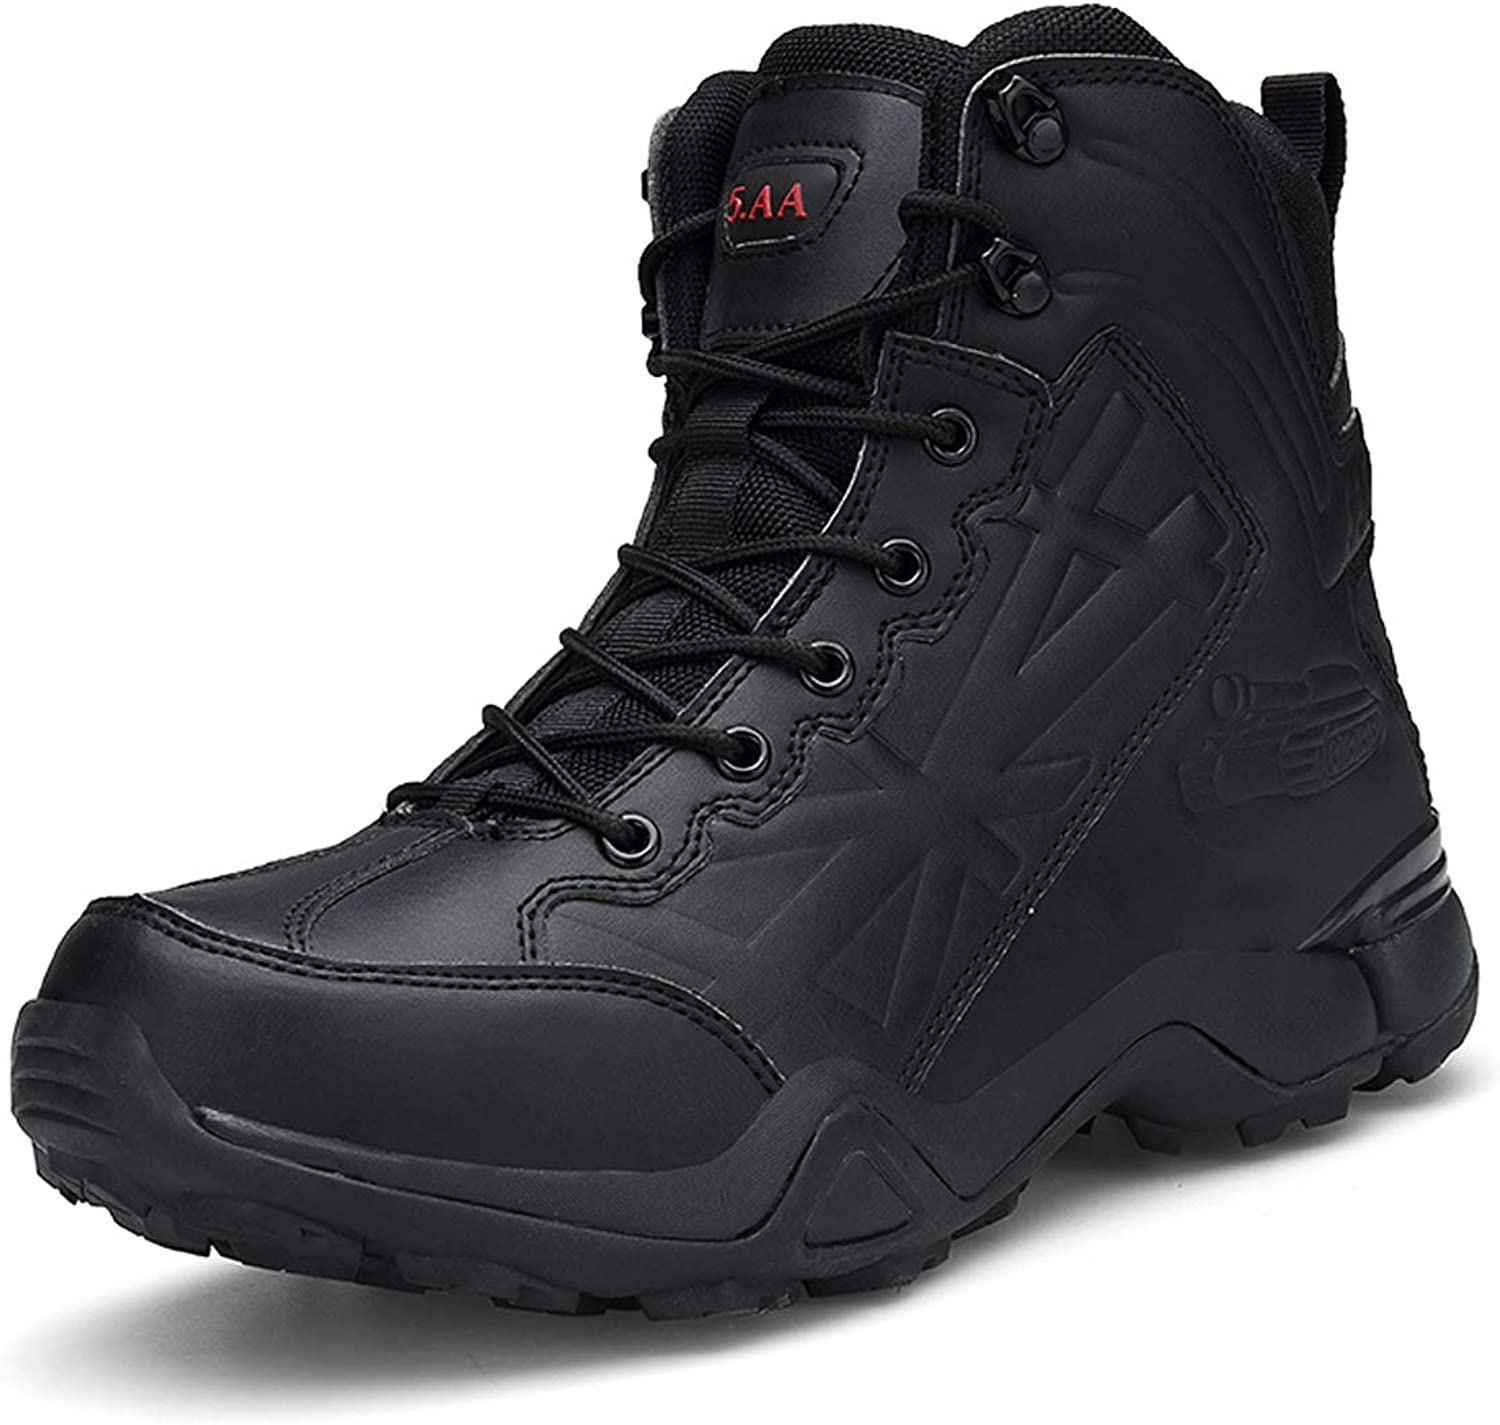 Men's Outdoor Military Boots Wear Hiking Tactical Boots Desert Boots Special Training Combat Boots Security Boots Hiking Boots